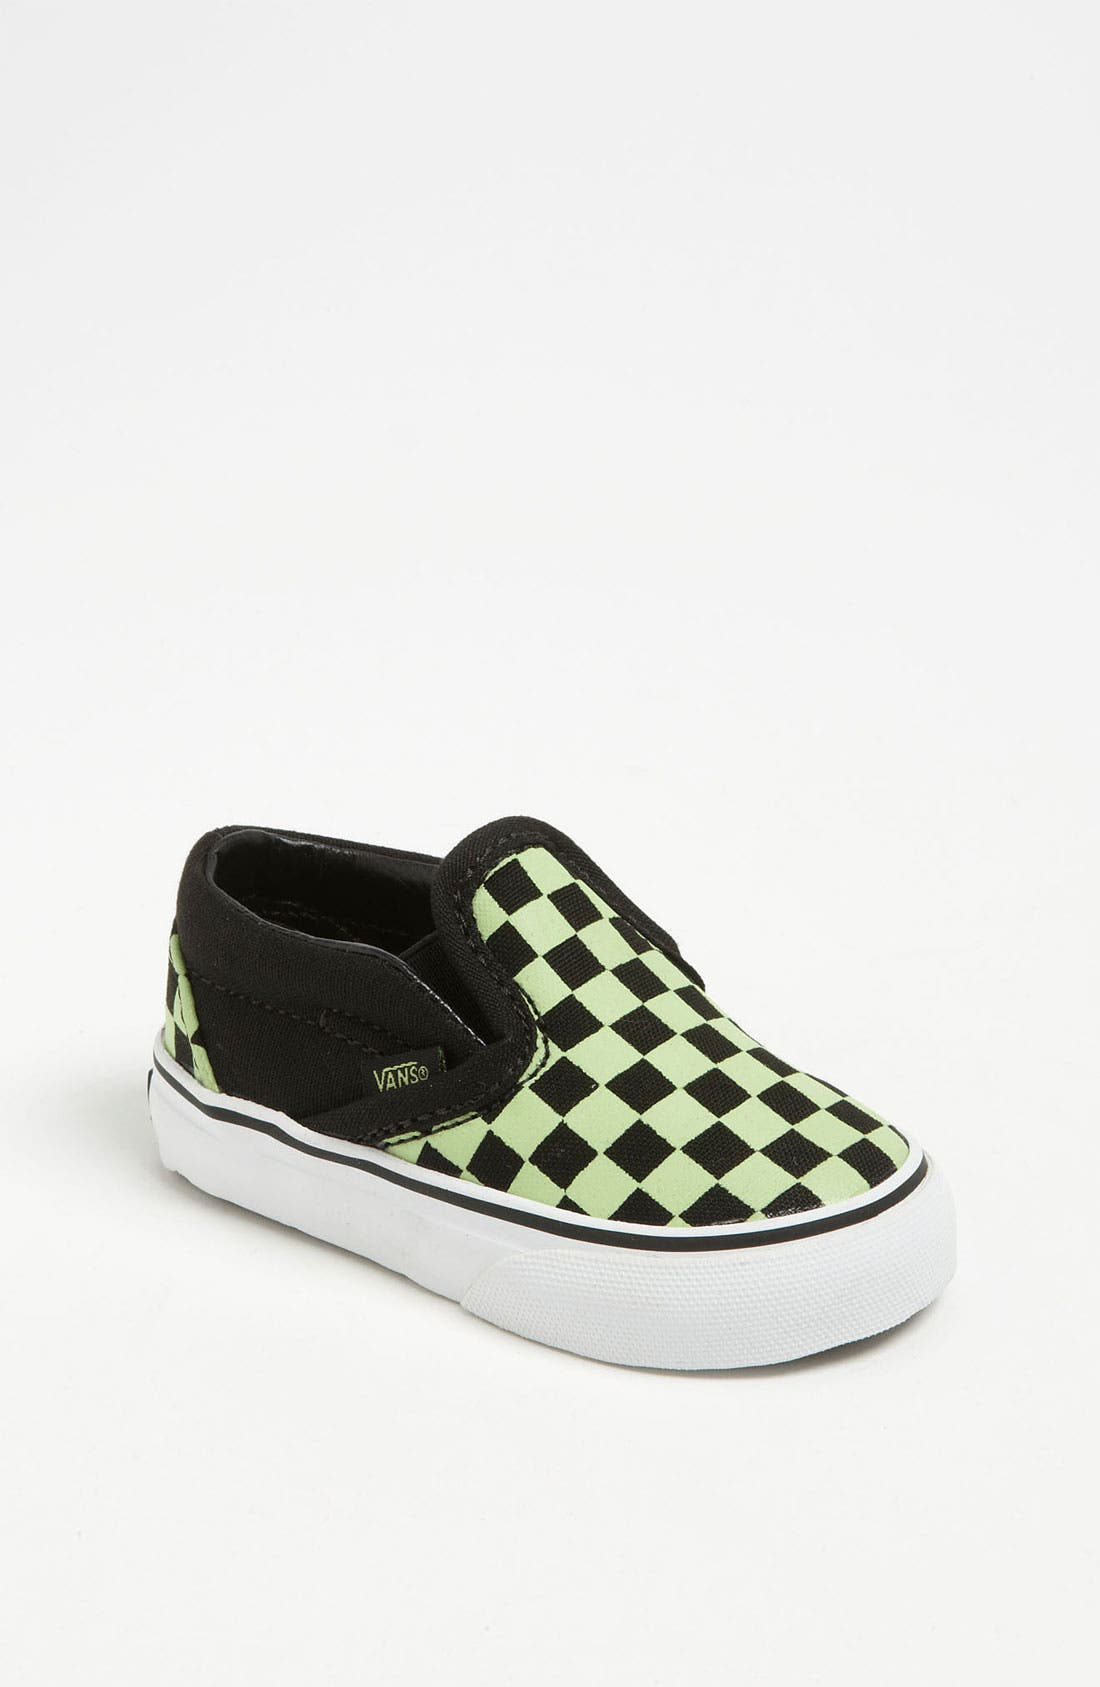 Alternate Image 1 Selected - Vans 'Classic Checker - Glow in the Dark' Slip-On (Baby, Walker & Toddler)